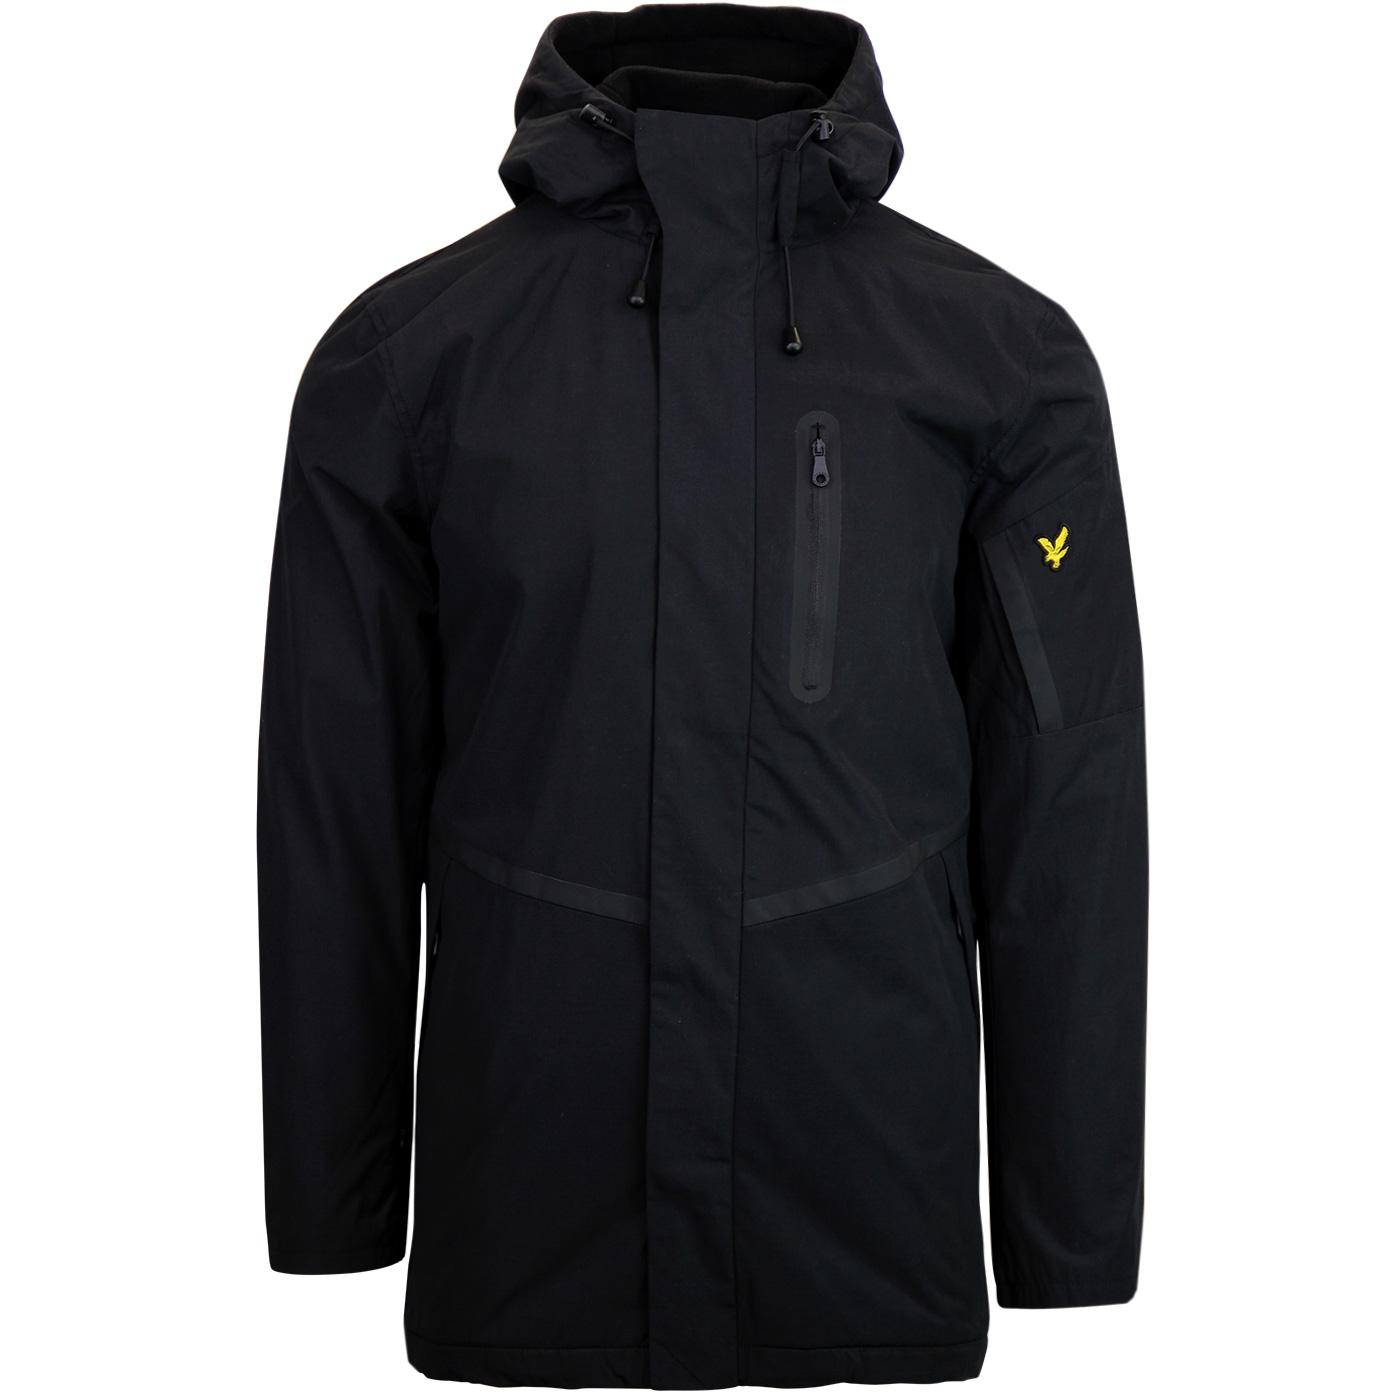 LYLE & SCOTT Mod Fleece Lined Casual Parka Jacket